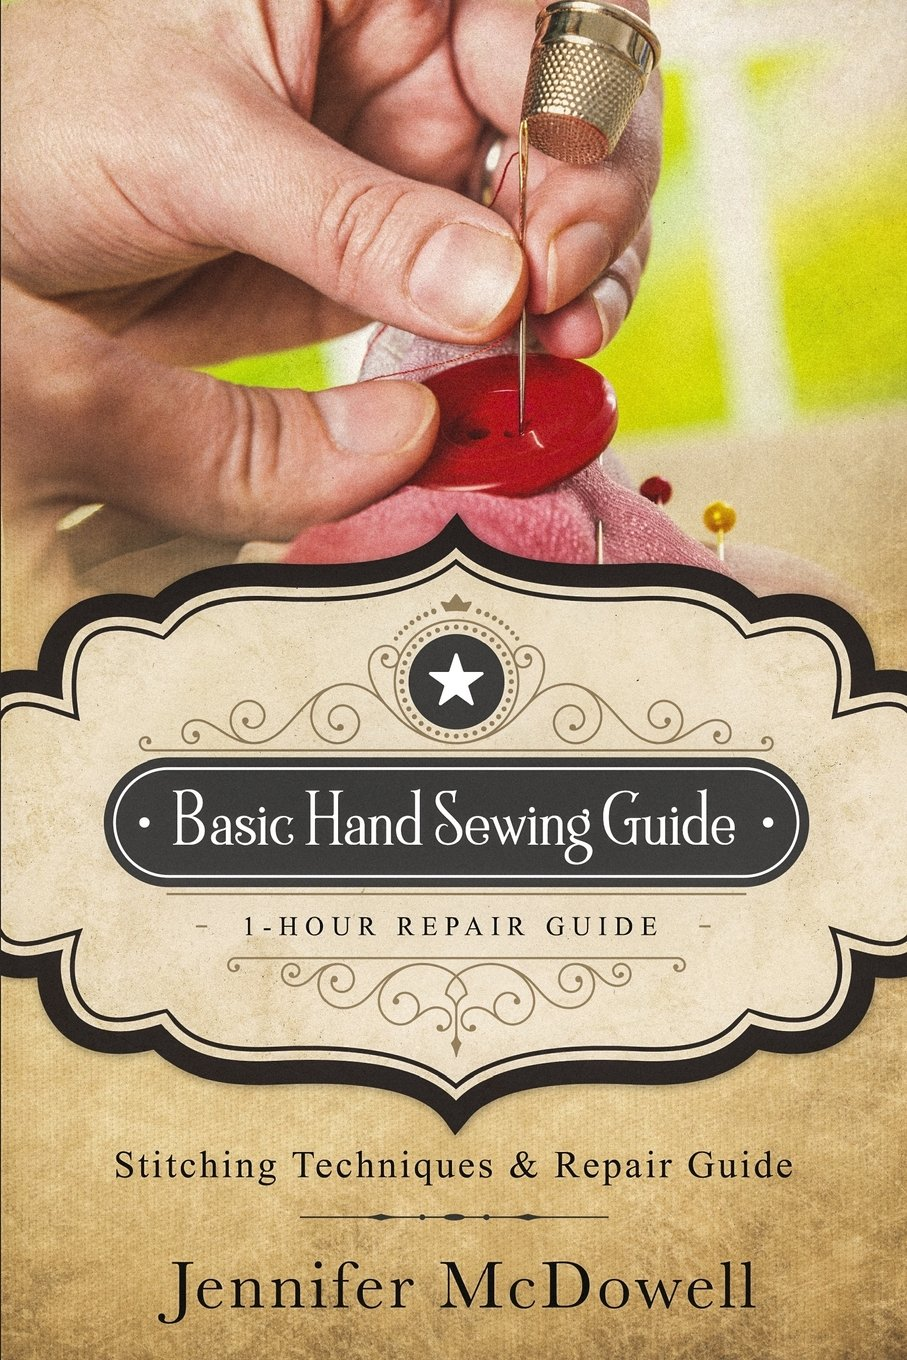 Download Basic Hand Sewing Guide 1-Hour Repair Guide: Stitching Techniques & Repair Guide ebook